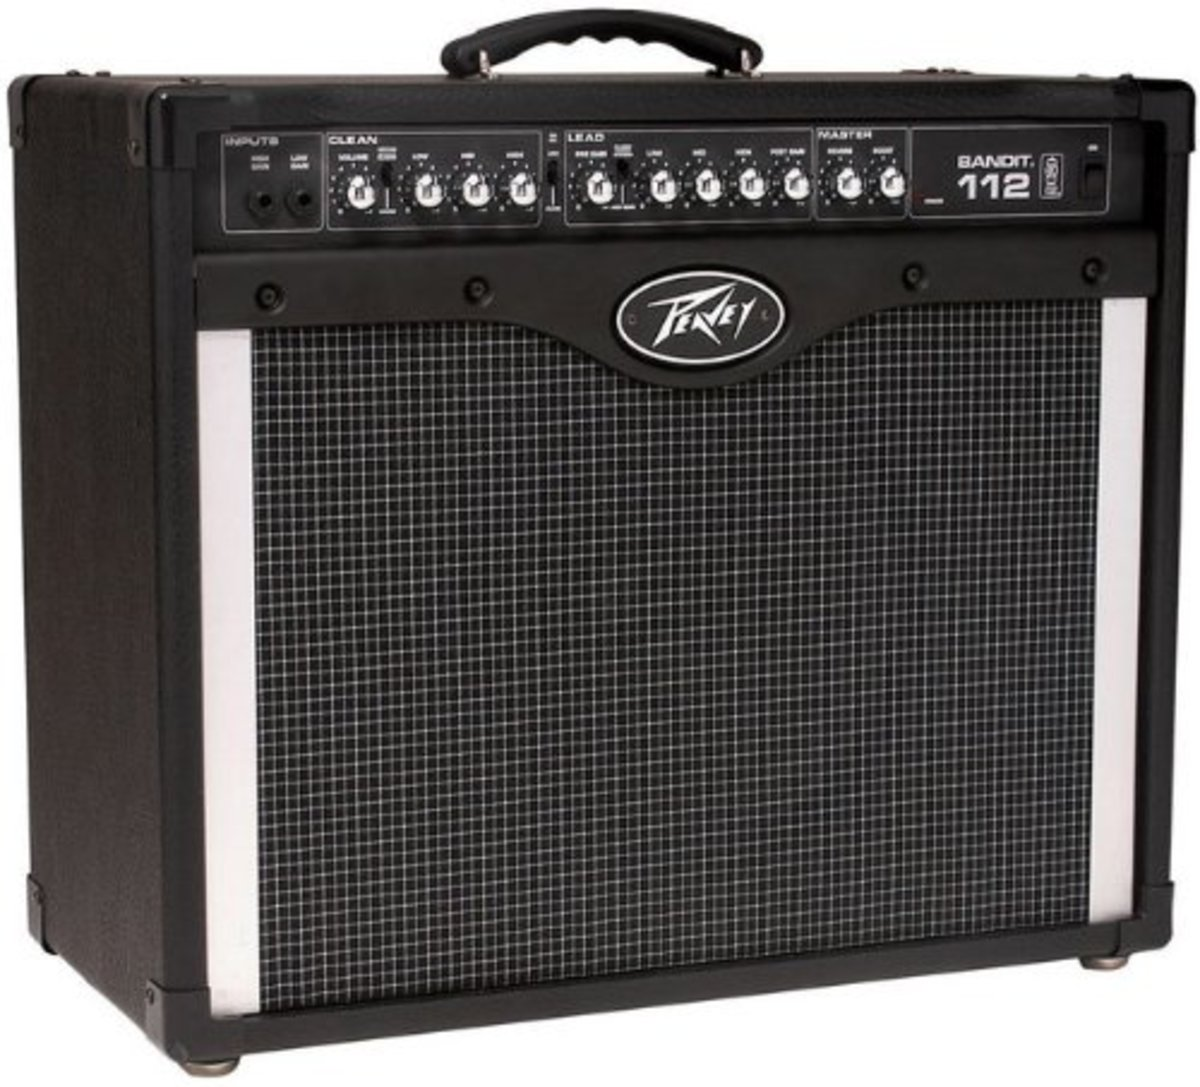 How to Choose the Best Guitar Amp for the Money